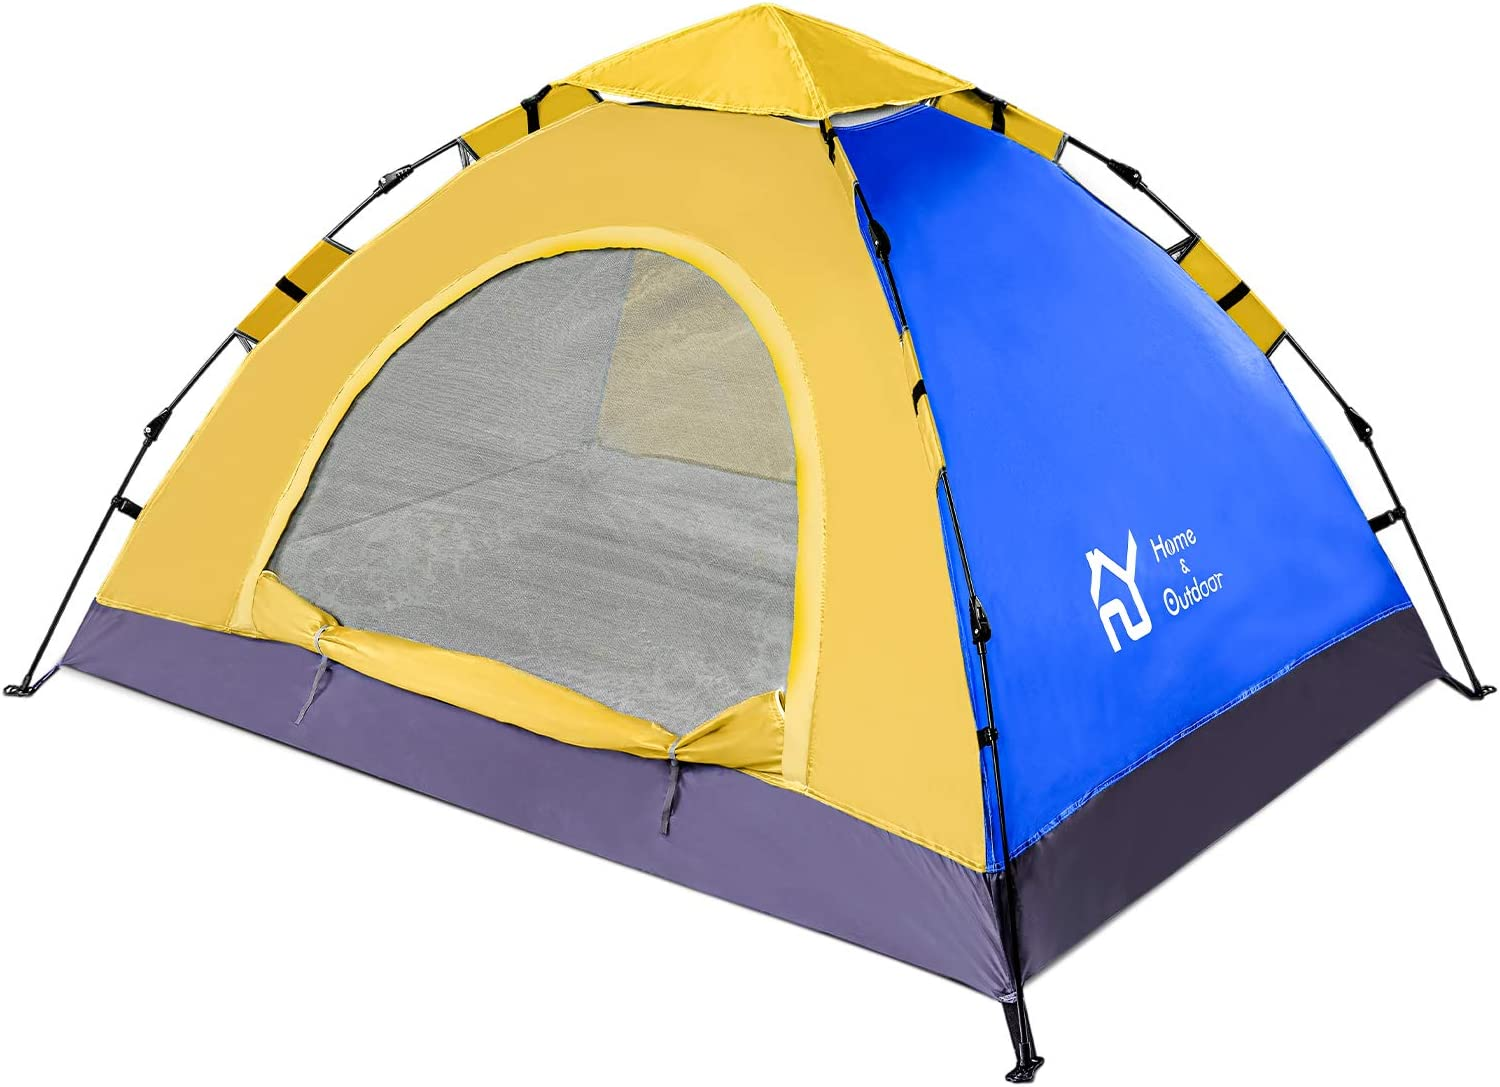 S.Y. HomeOutdoor Lightweight Camping Ranking integrated Quality inspection 1st place Pop Up for C Tent 2 Person